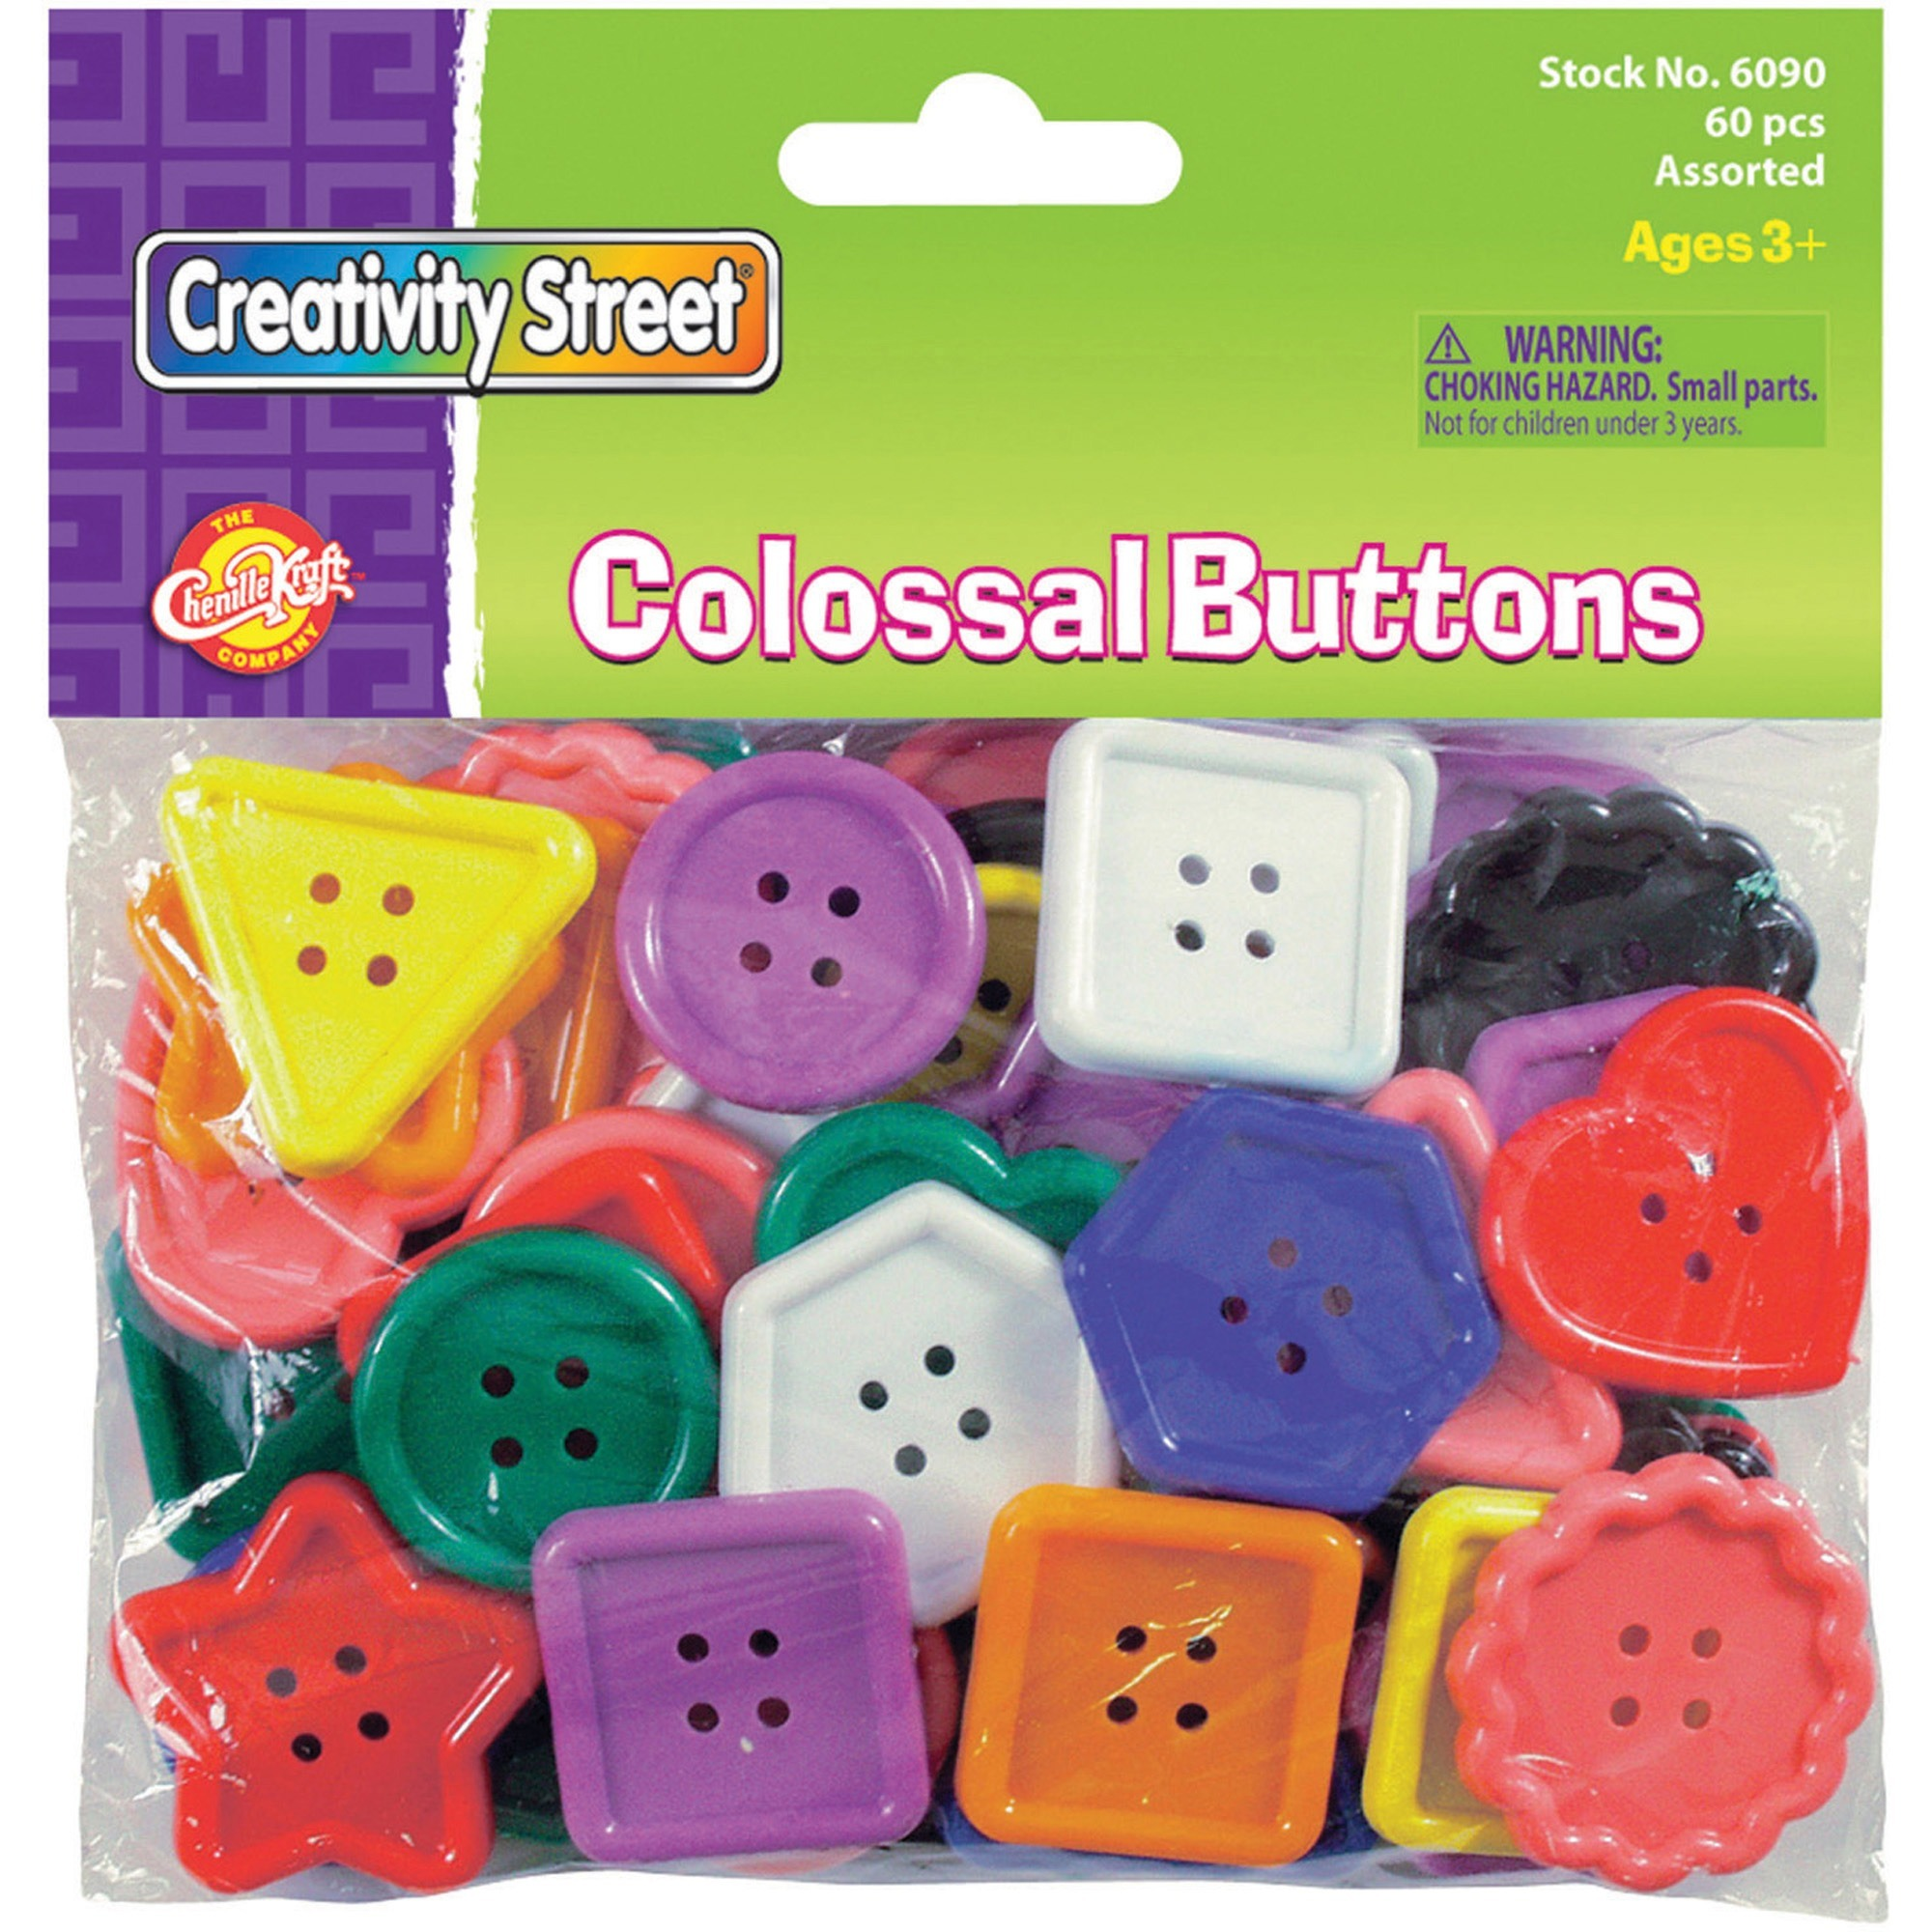 Creativity Street, CKC6090, Extra Large Plastic Buttons, 1 Pack, Assorted